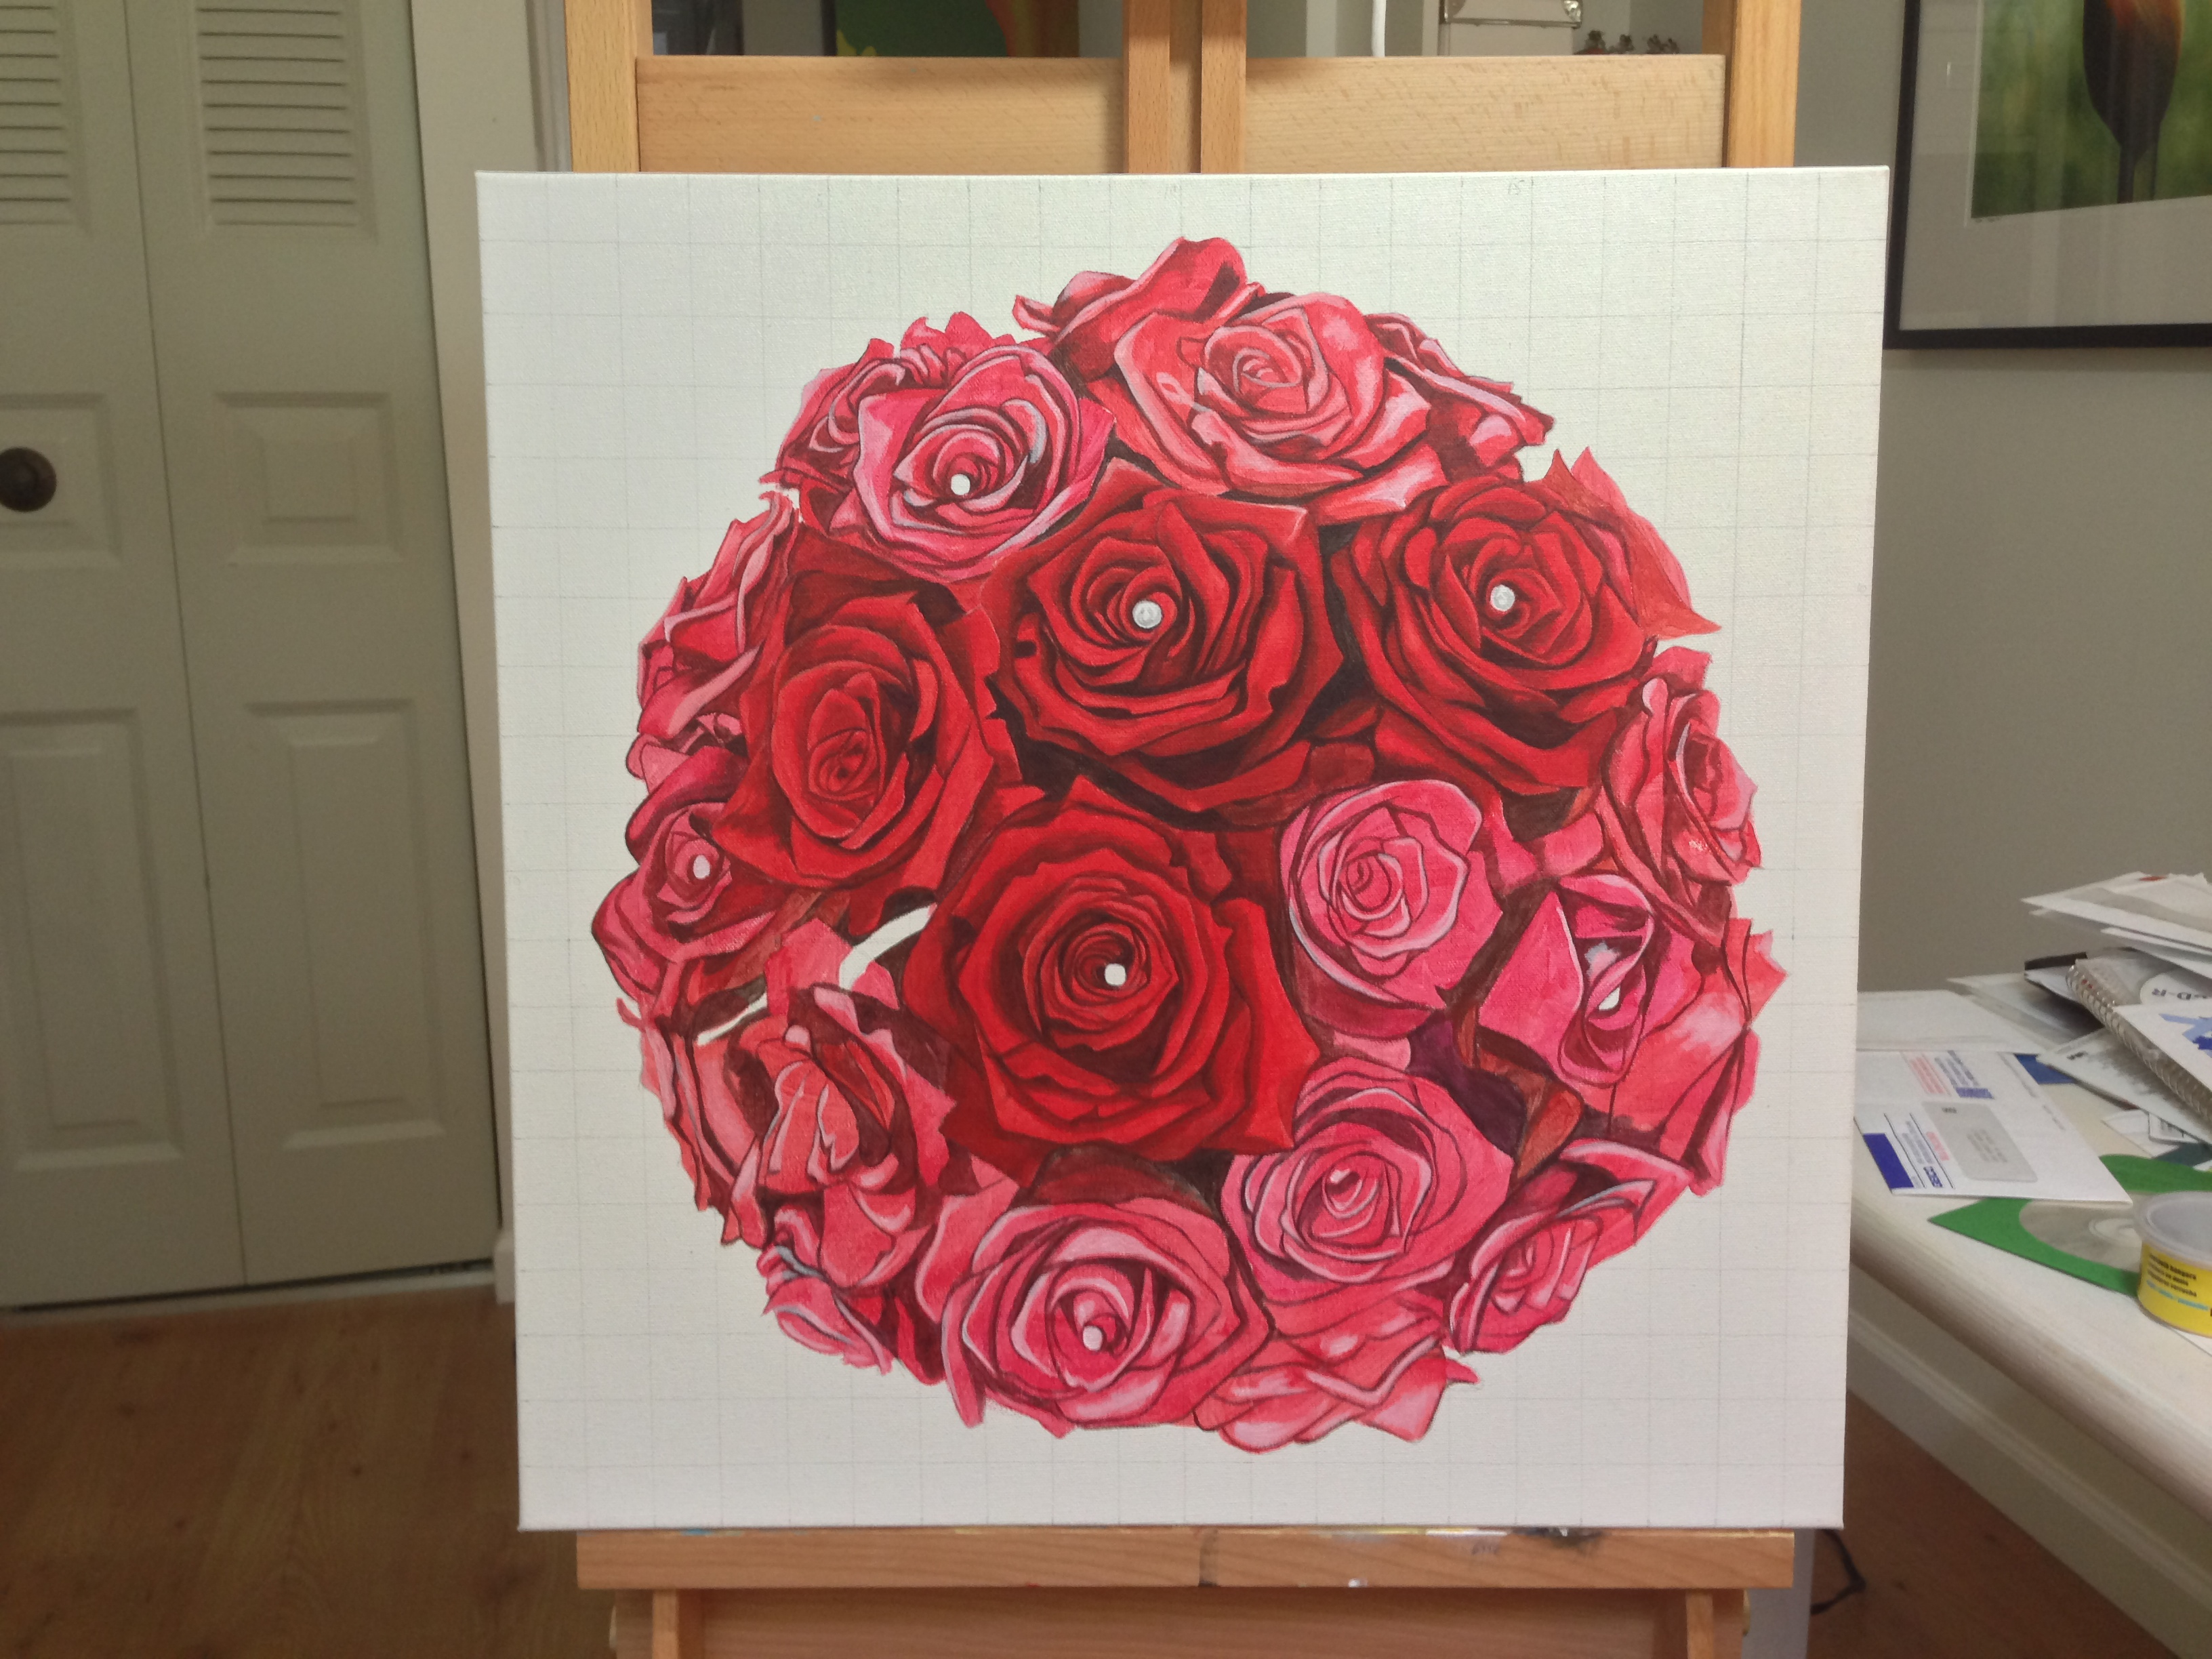 Linn's bridal bouquet painting - original acrylic by Erica Eriksdotter of Studio Eriksdotter. A unique way of preserving your wedding bouquet flowers.